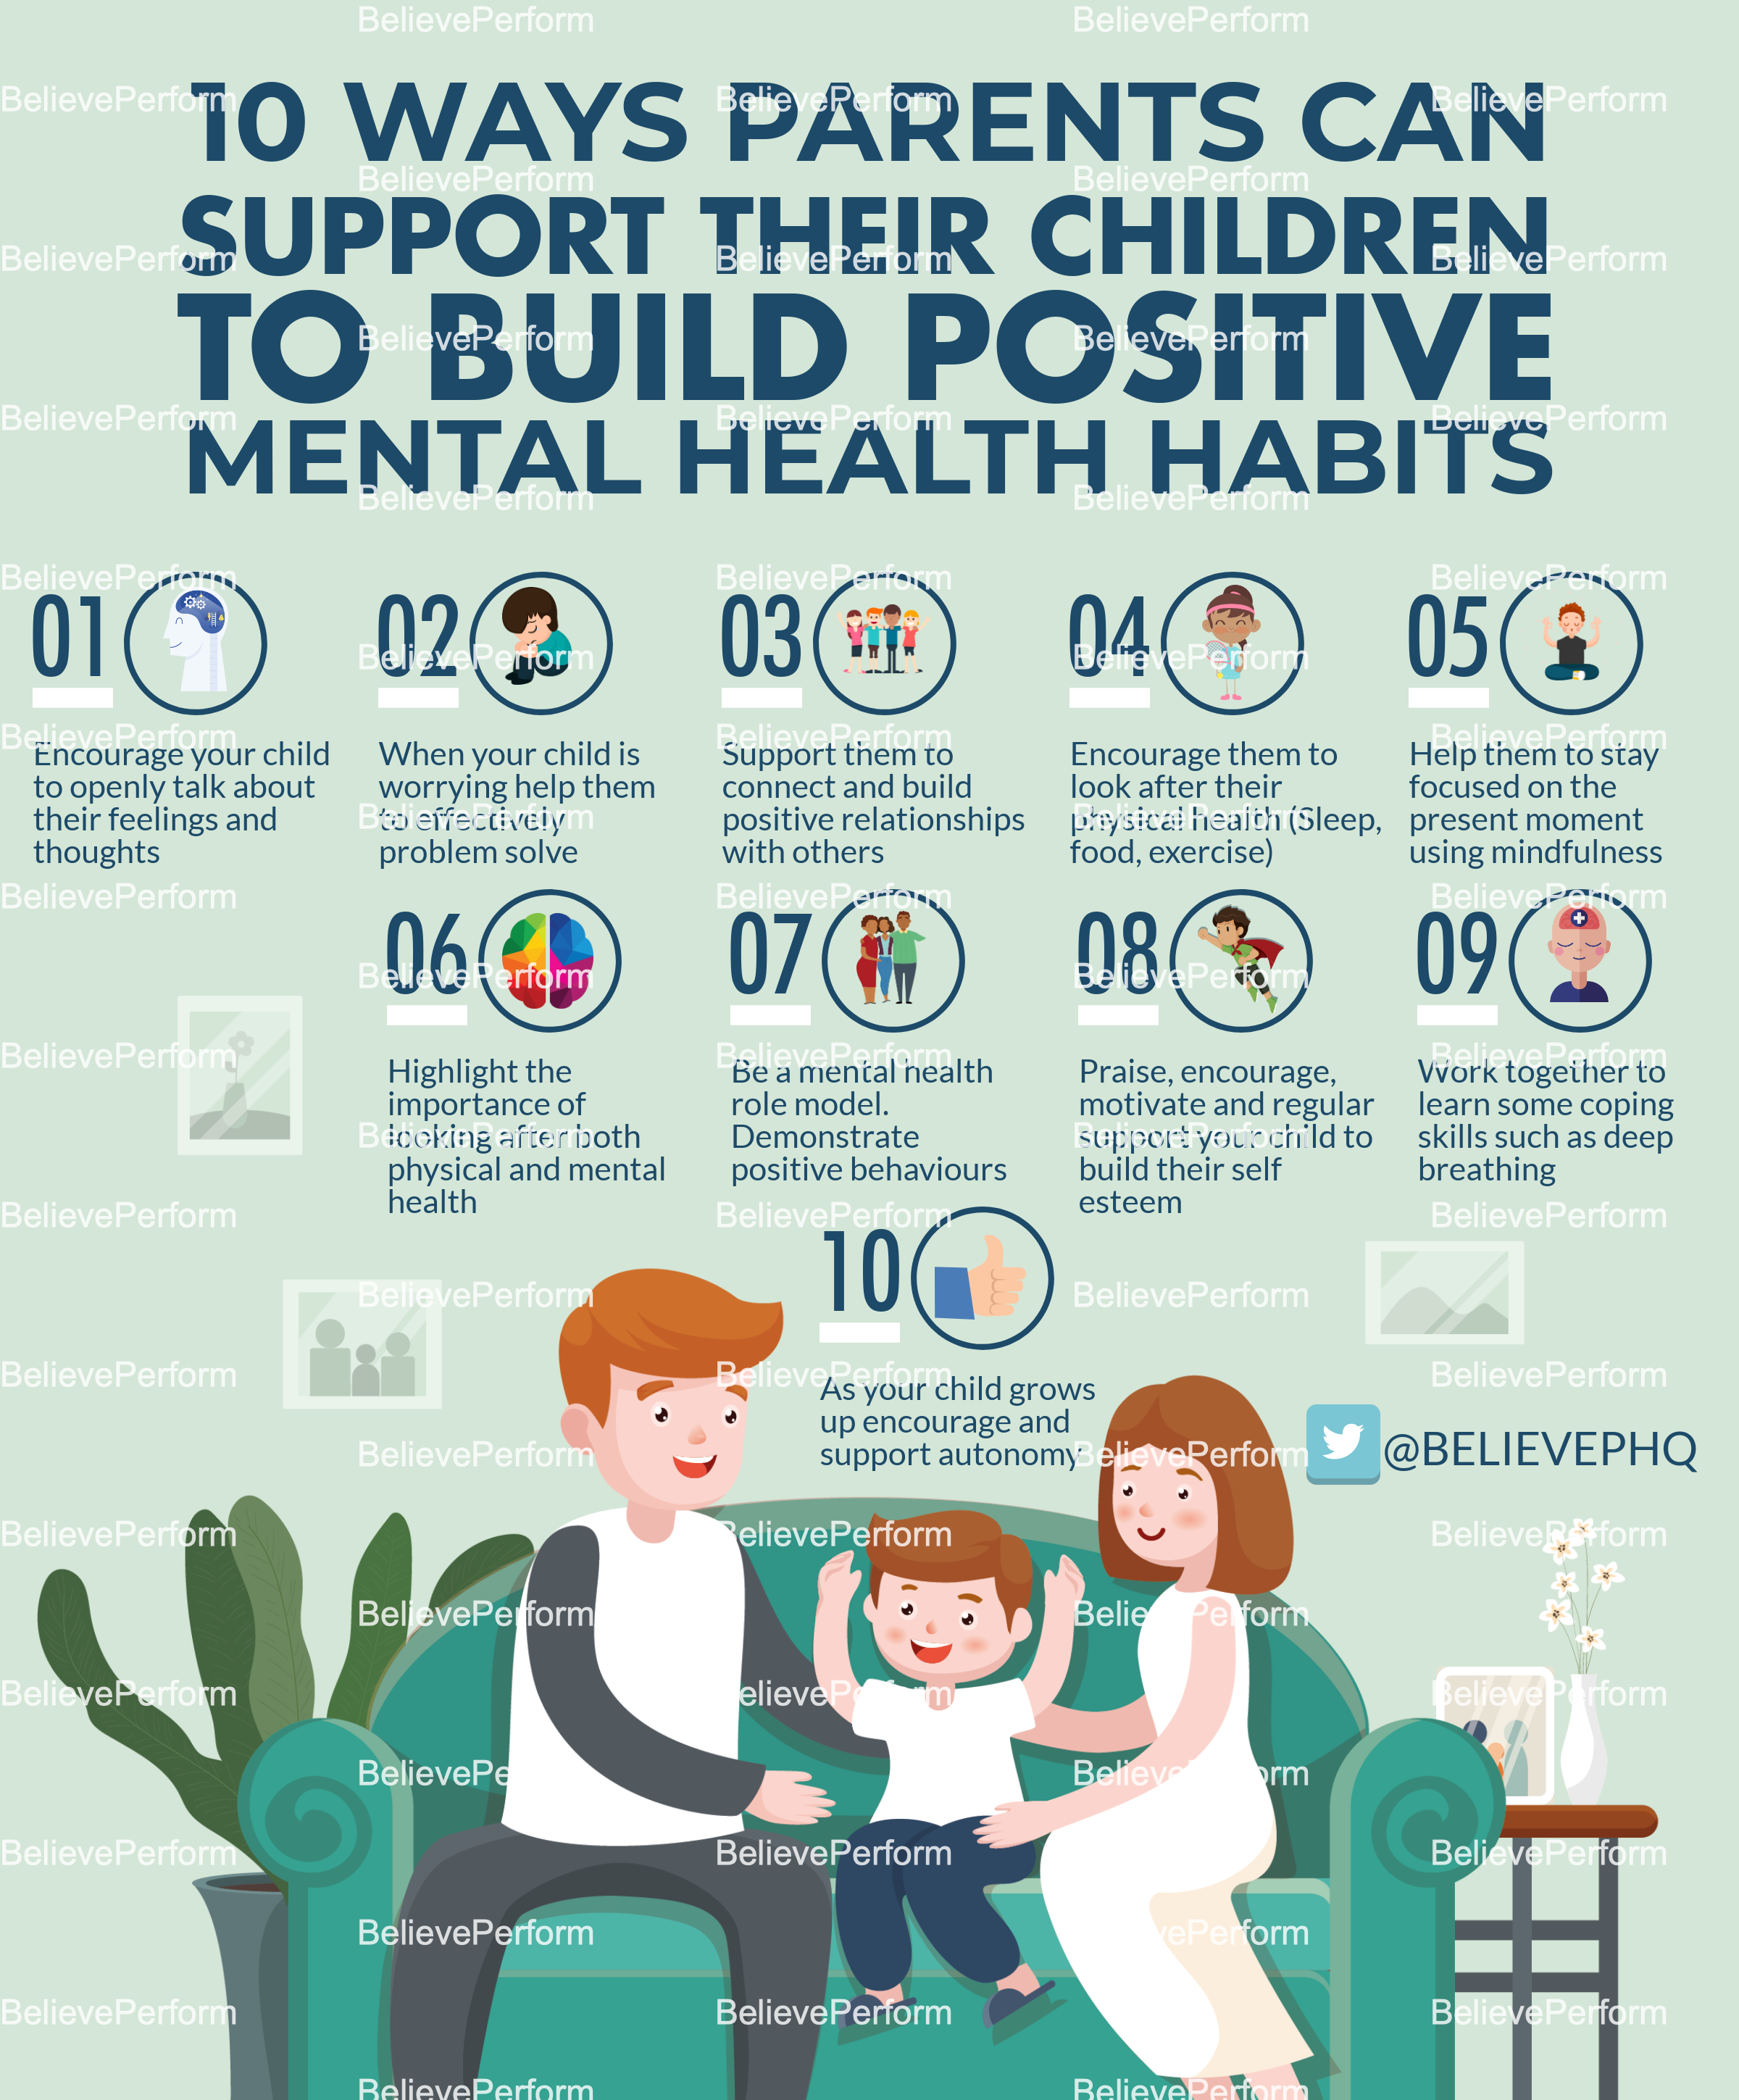 10 ways parents can support their children to build positive mental health habits